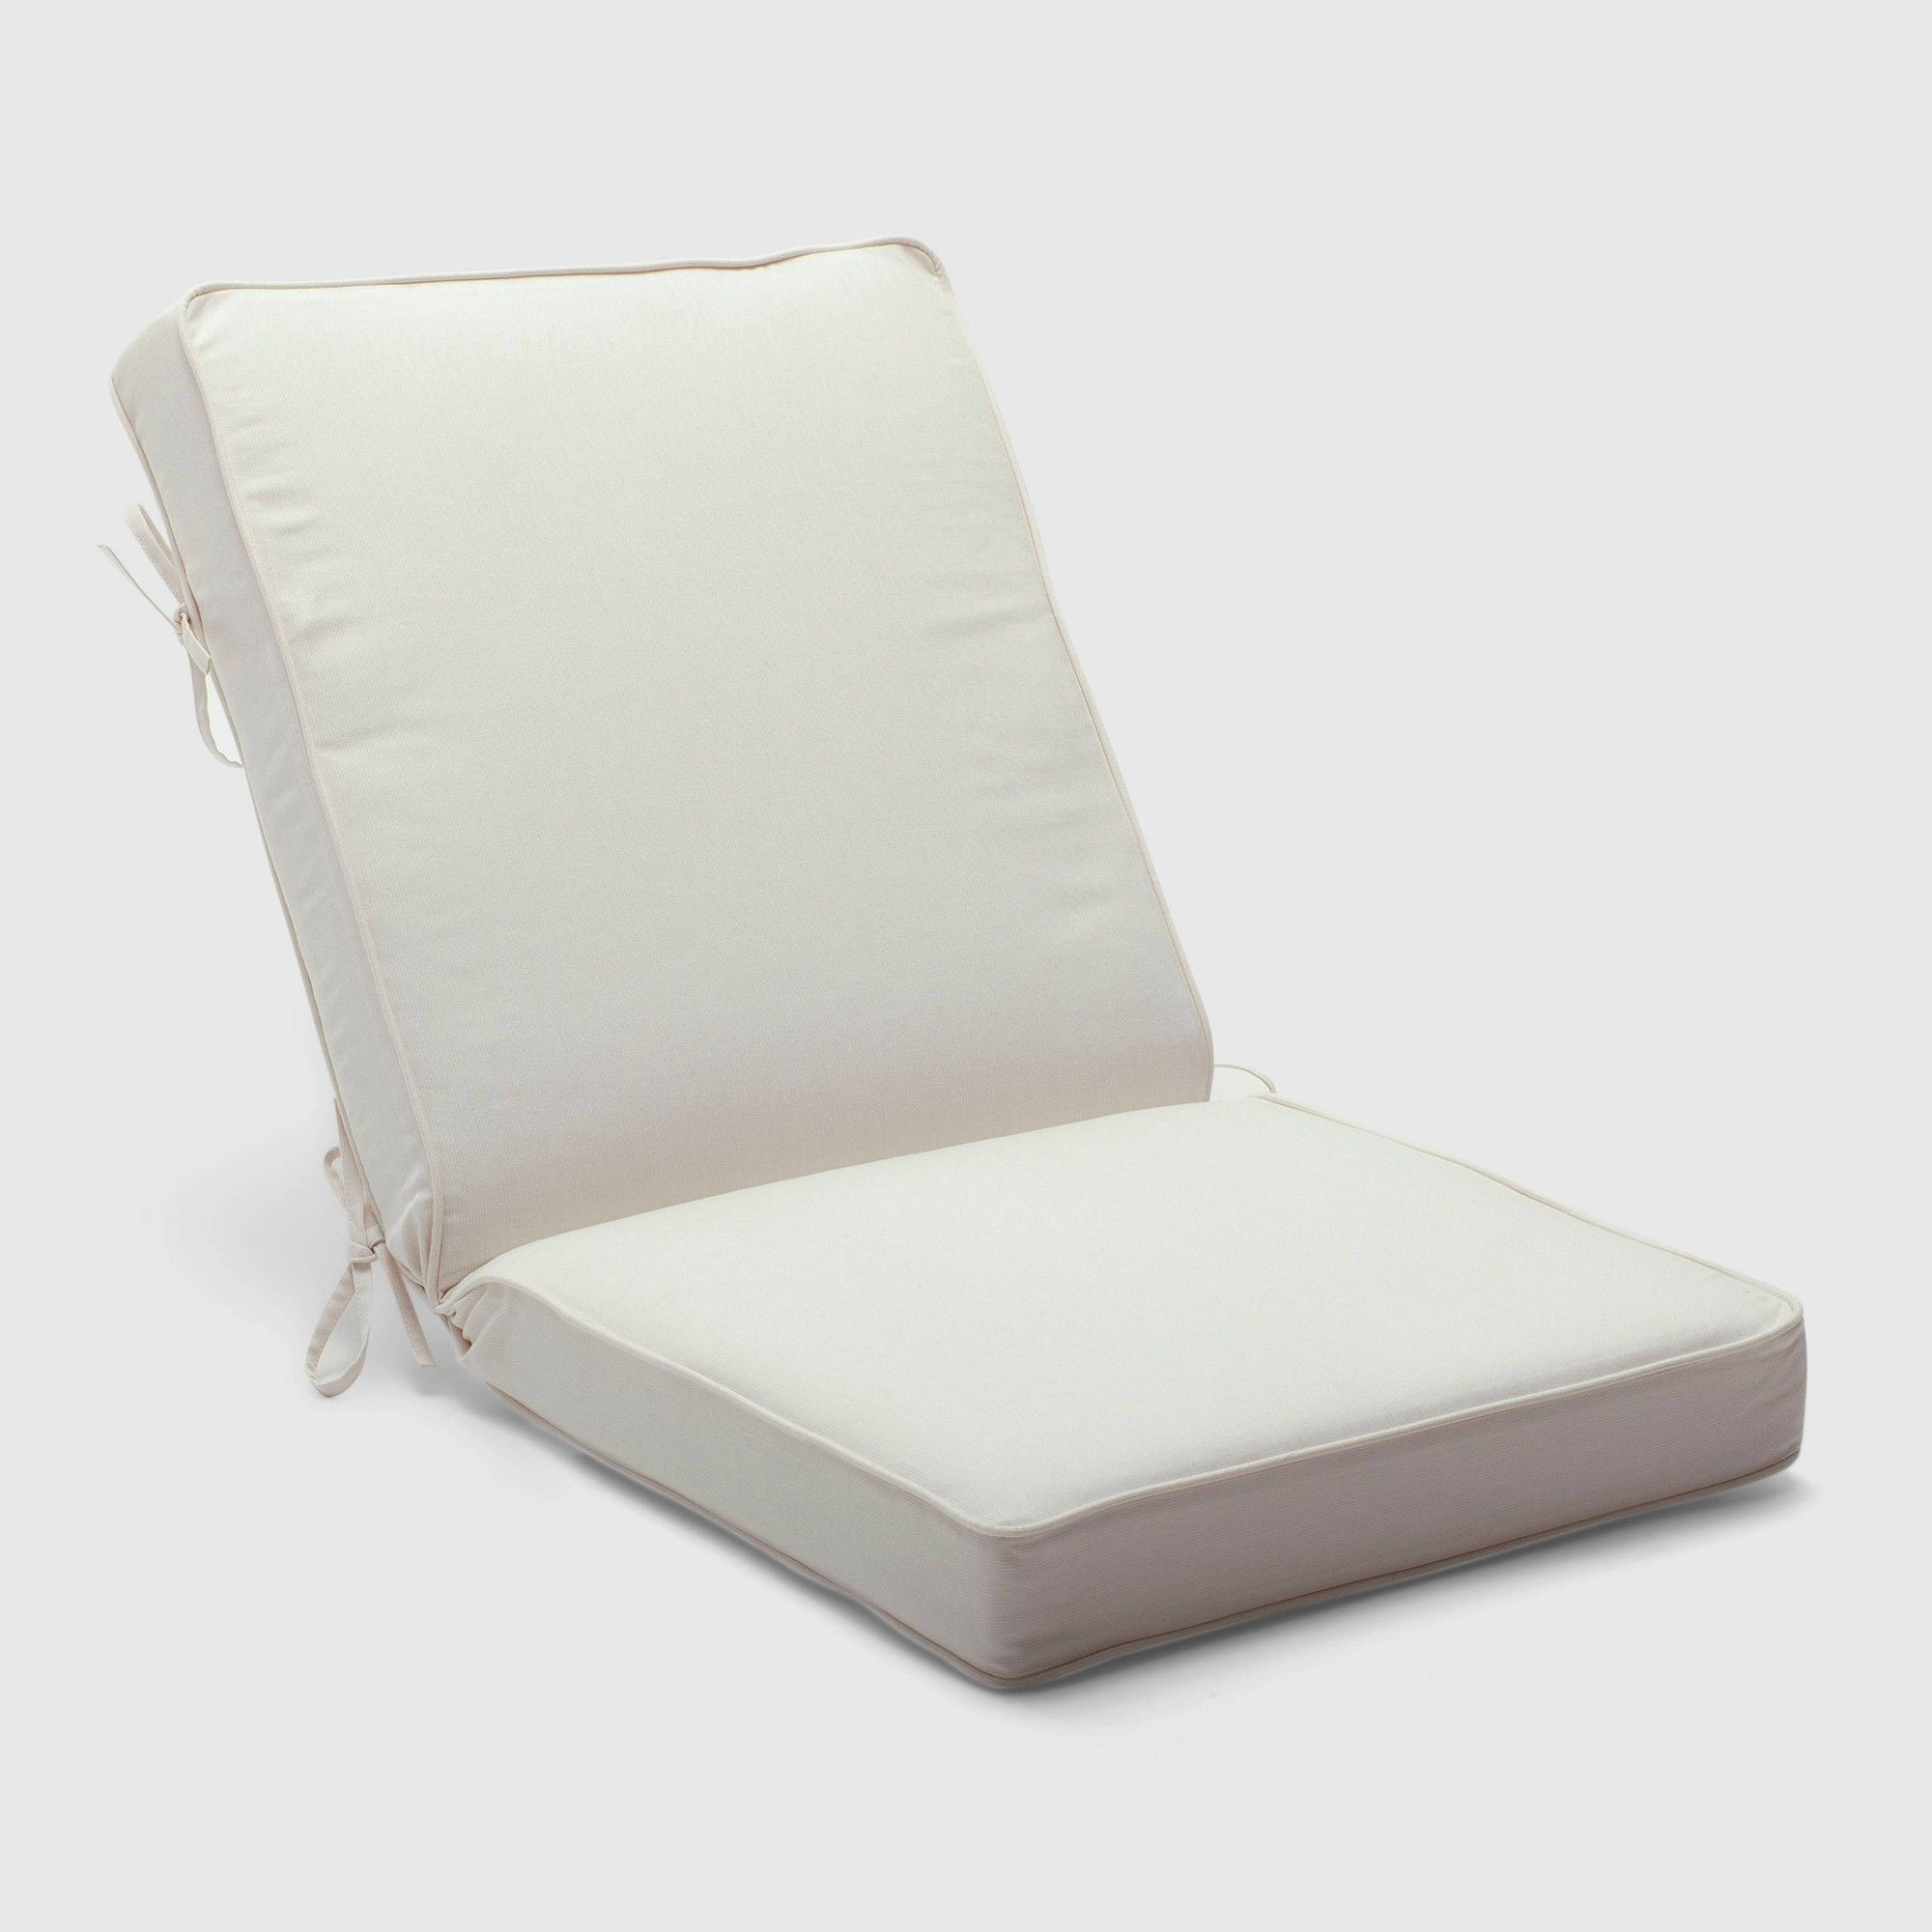 Eggshell Chair Outdoor Double Welt Chair Cushion Sunbrella Spectrum Eggshell